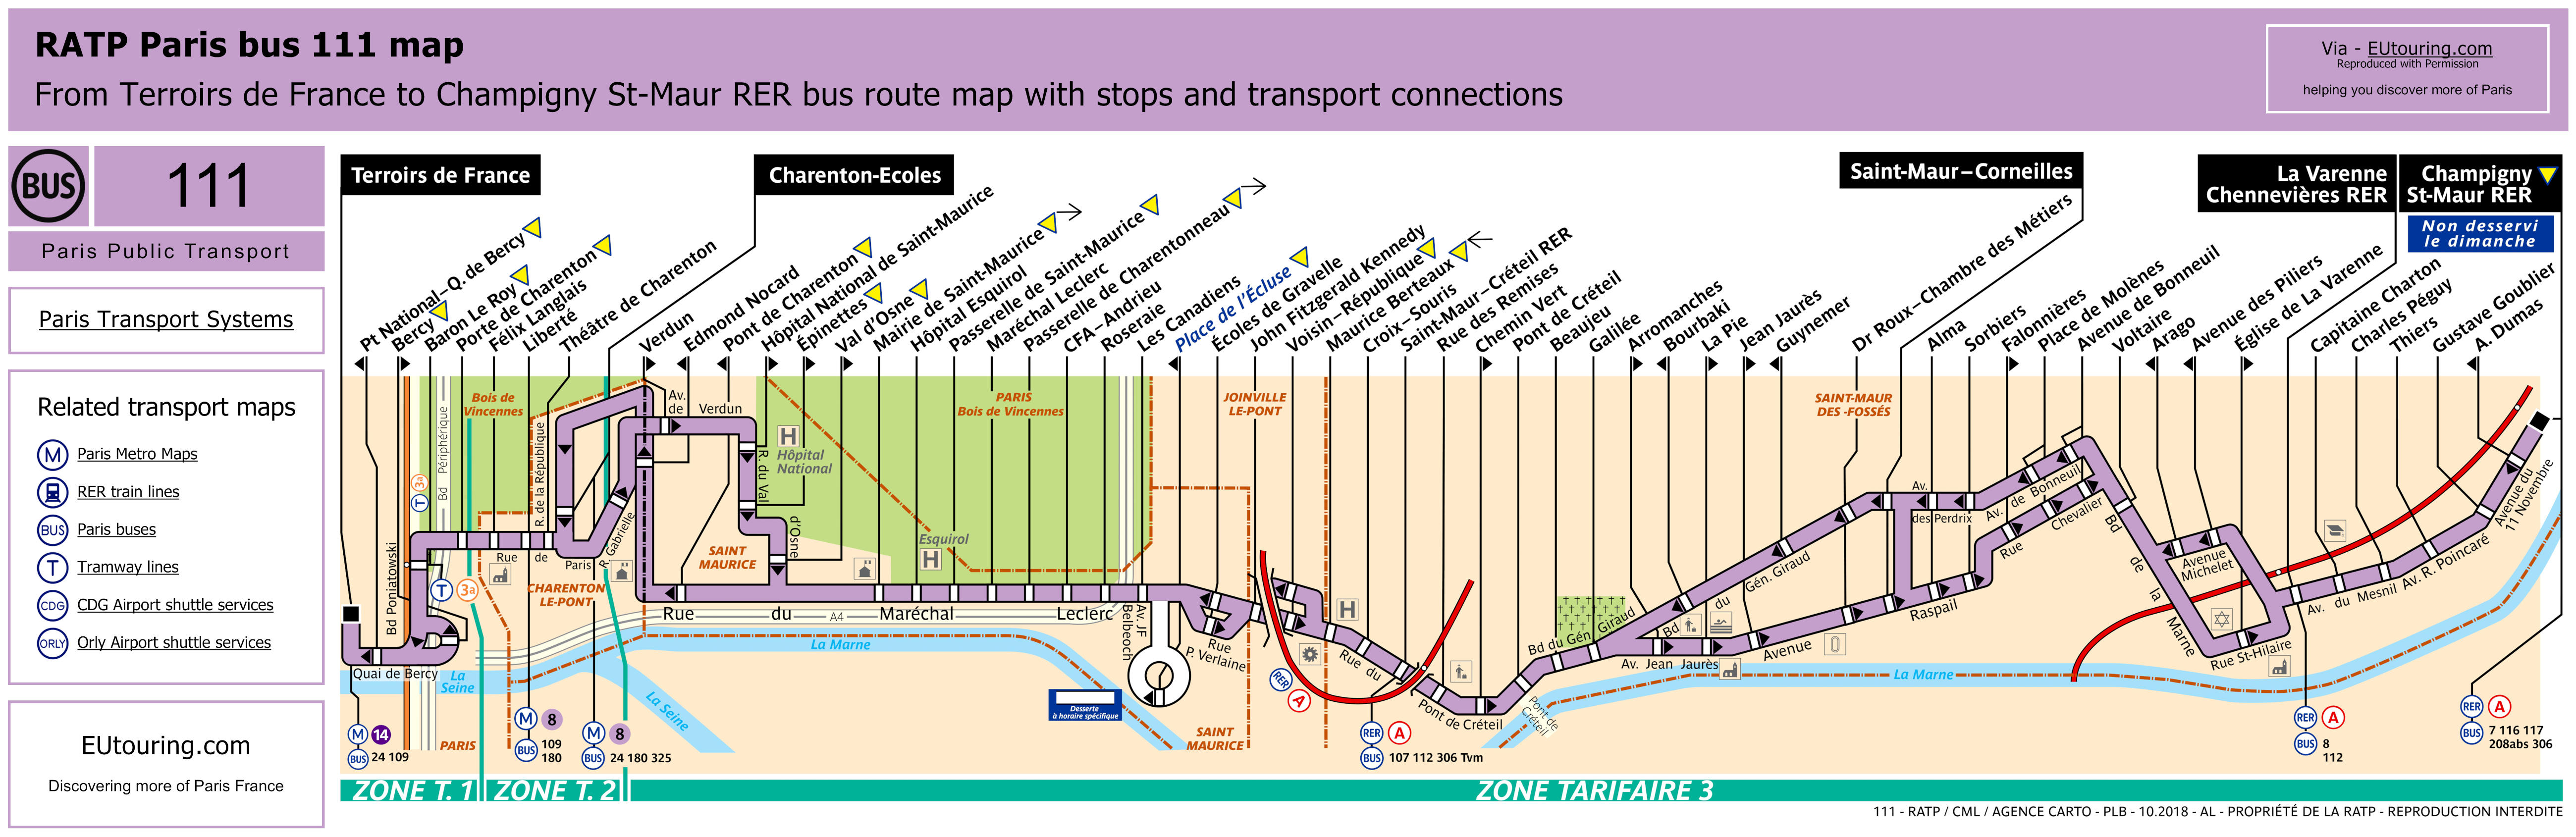 RATP route maps for Paris bus lines 110 through to 119 on